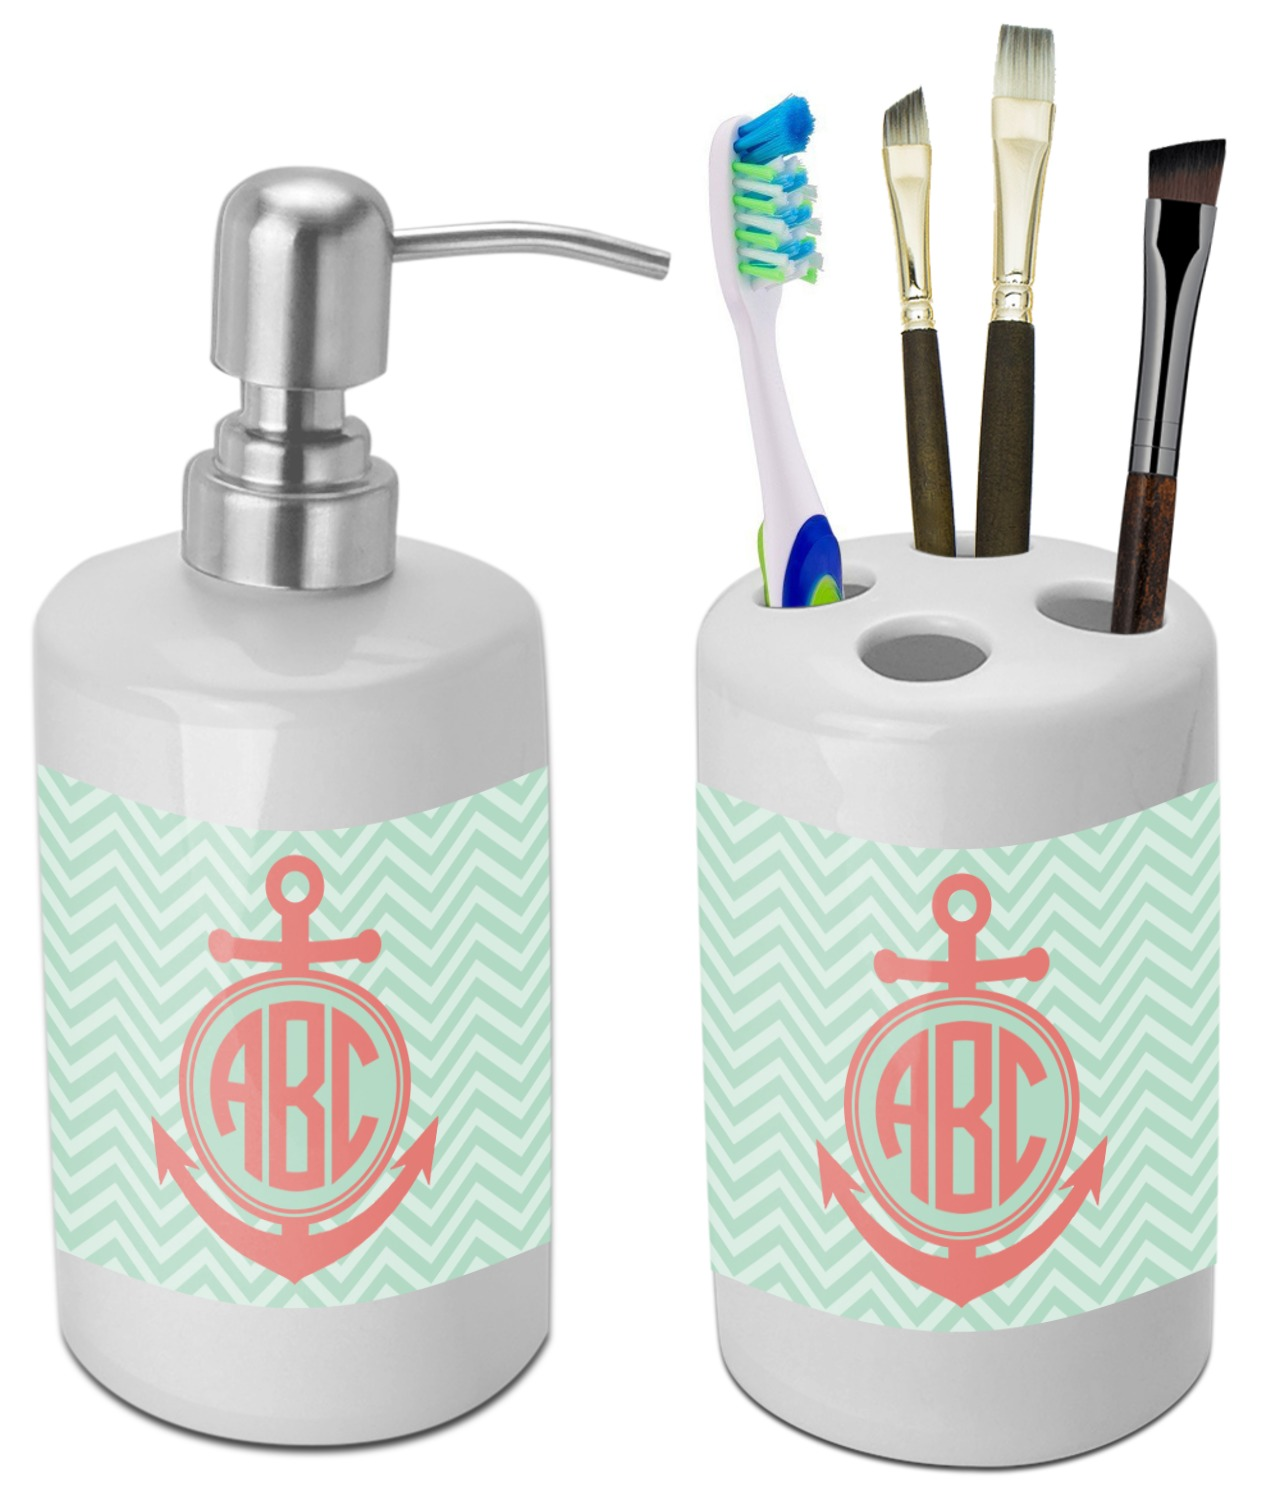 Superbe Chevron U0026 Anchor Bathroom Accessories Set (Ceramic) (Personalized)